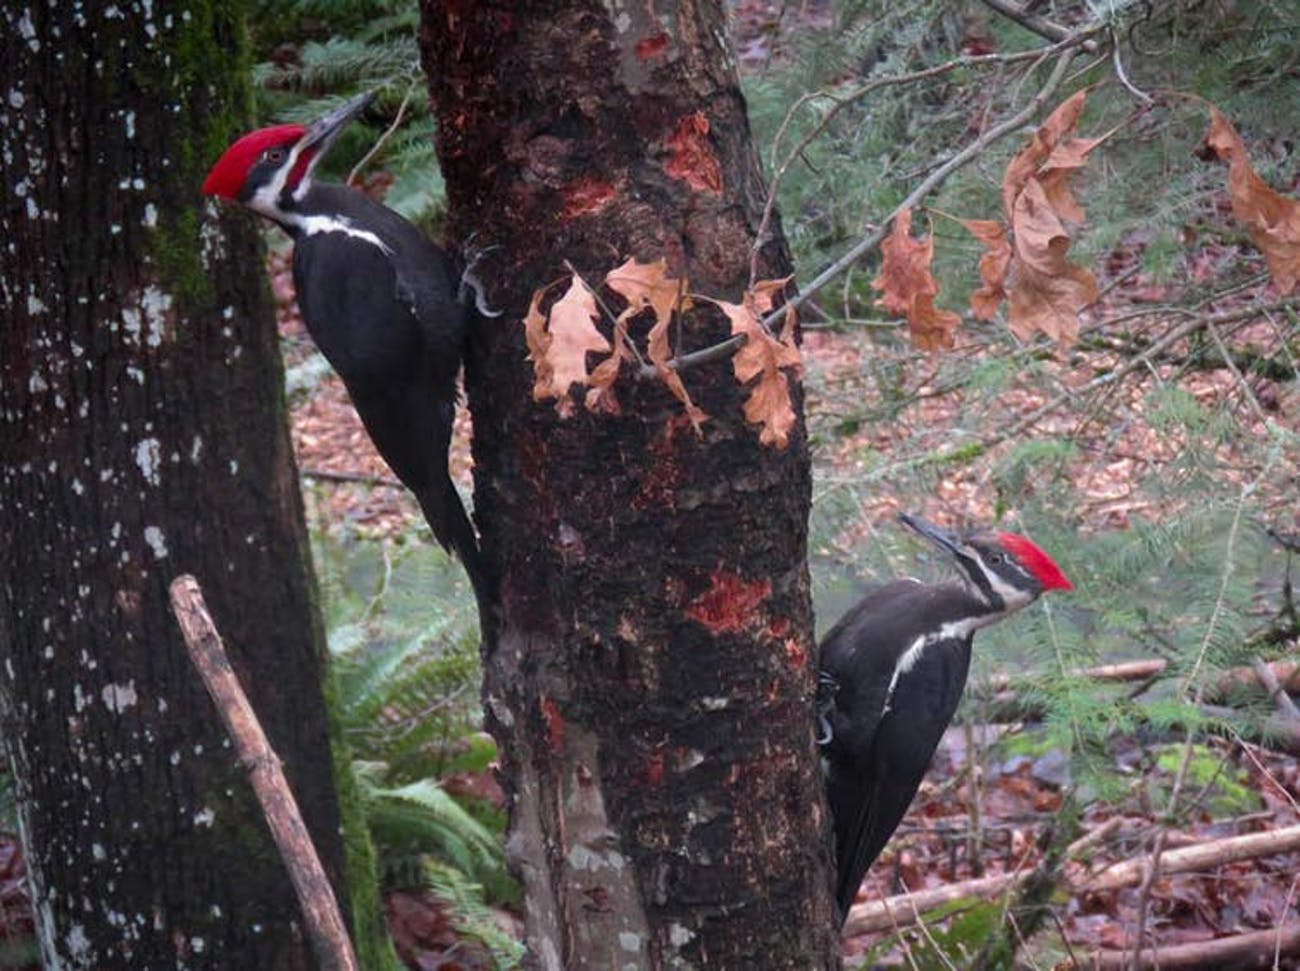 Pileated woodpeckers excavate nests within snags, bringing life to charred forests in Oregon.